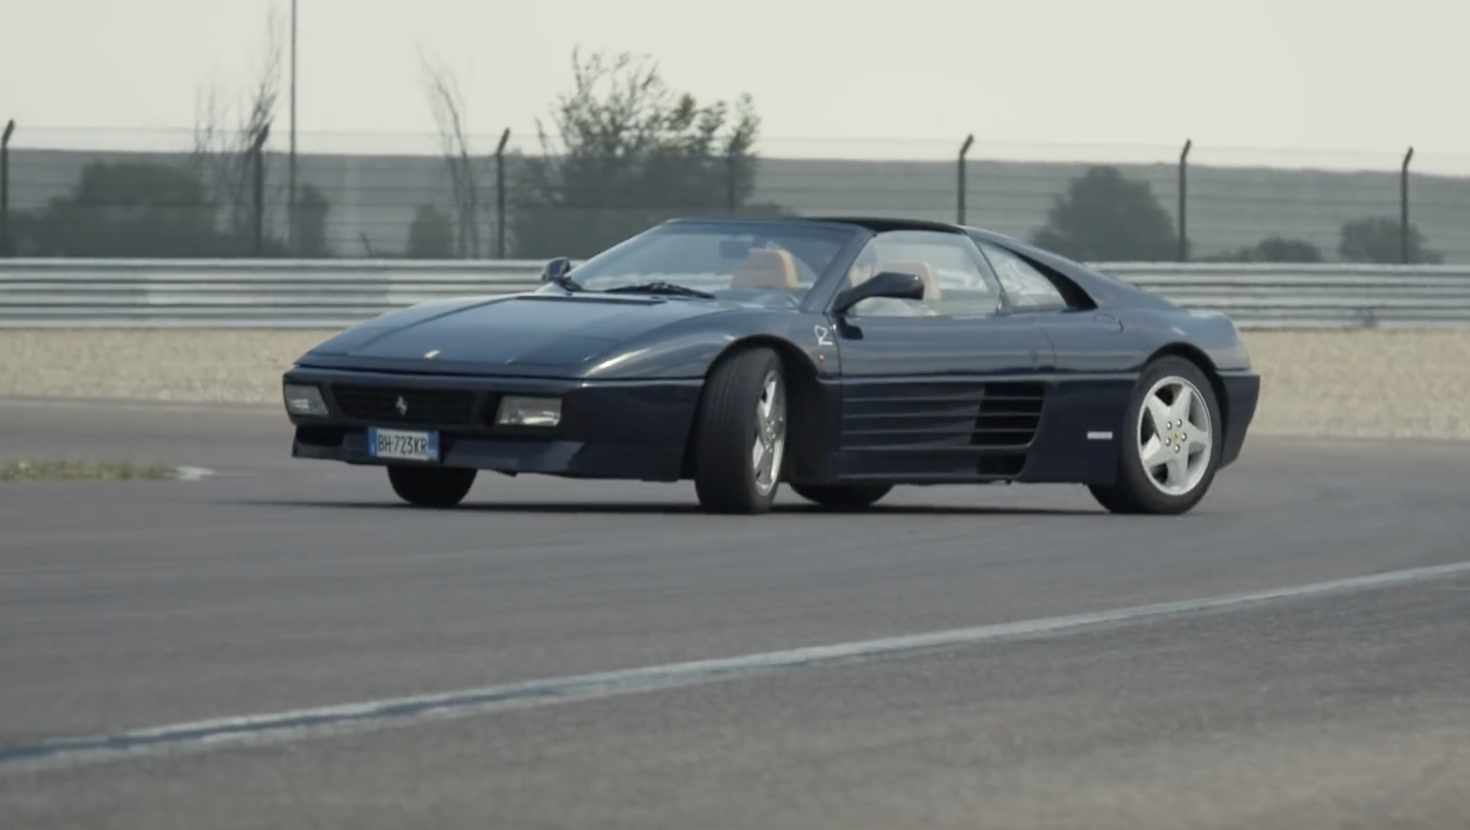 Taking The Challenge: Get A POV View Of Throwing A Ferrari 348 Challenge Around A Track!